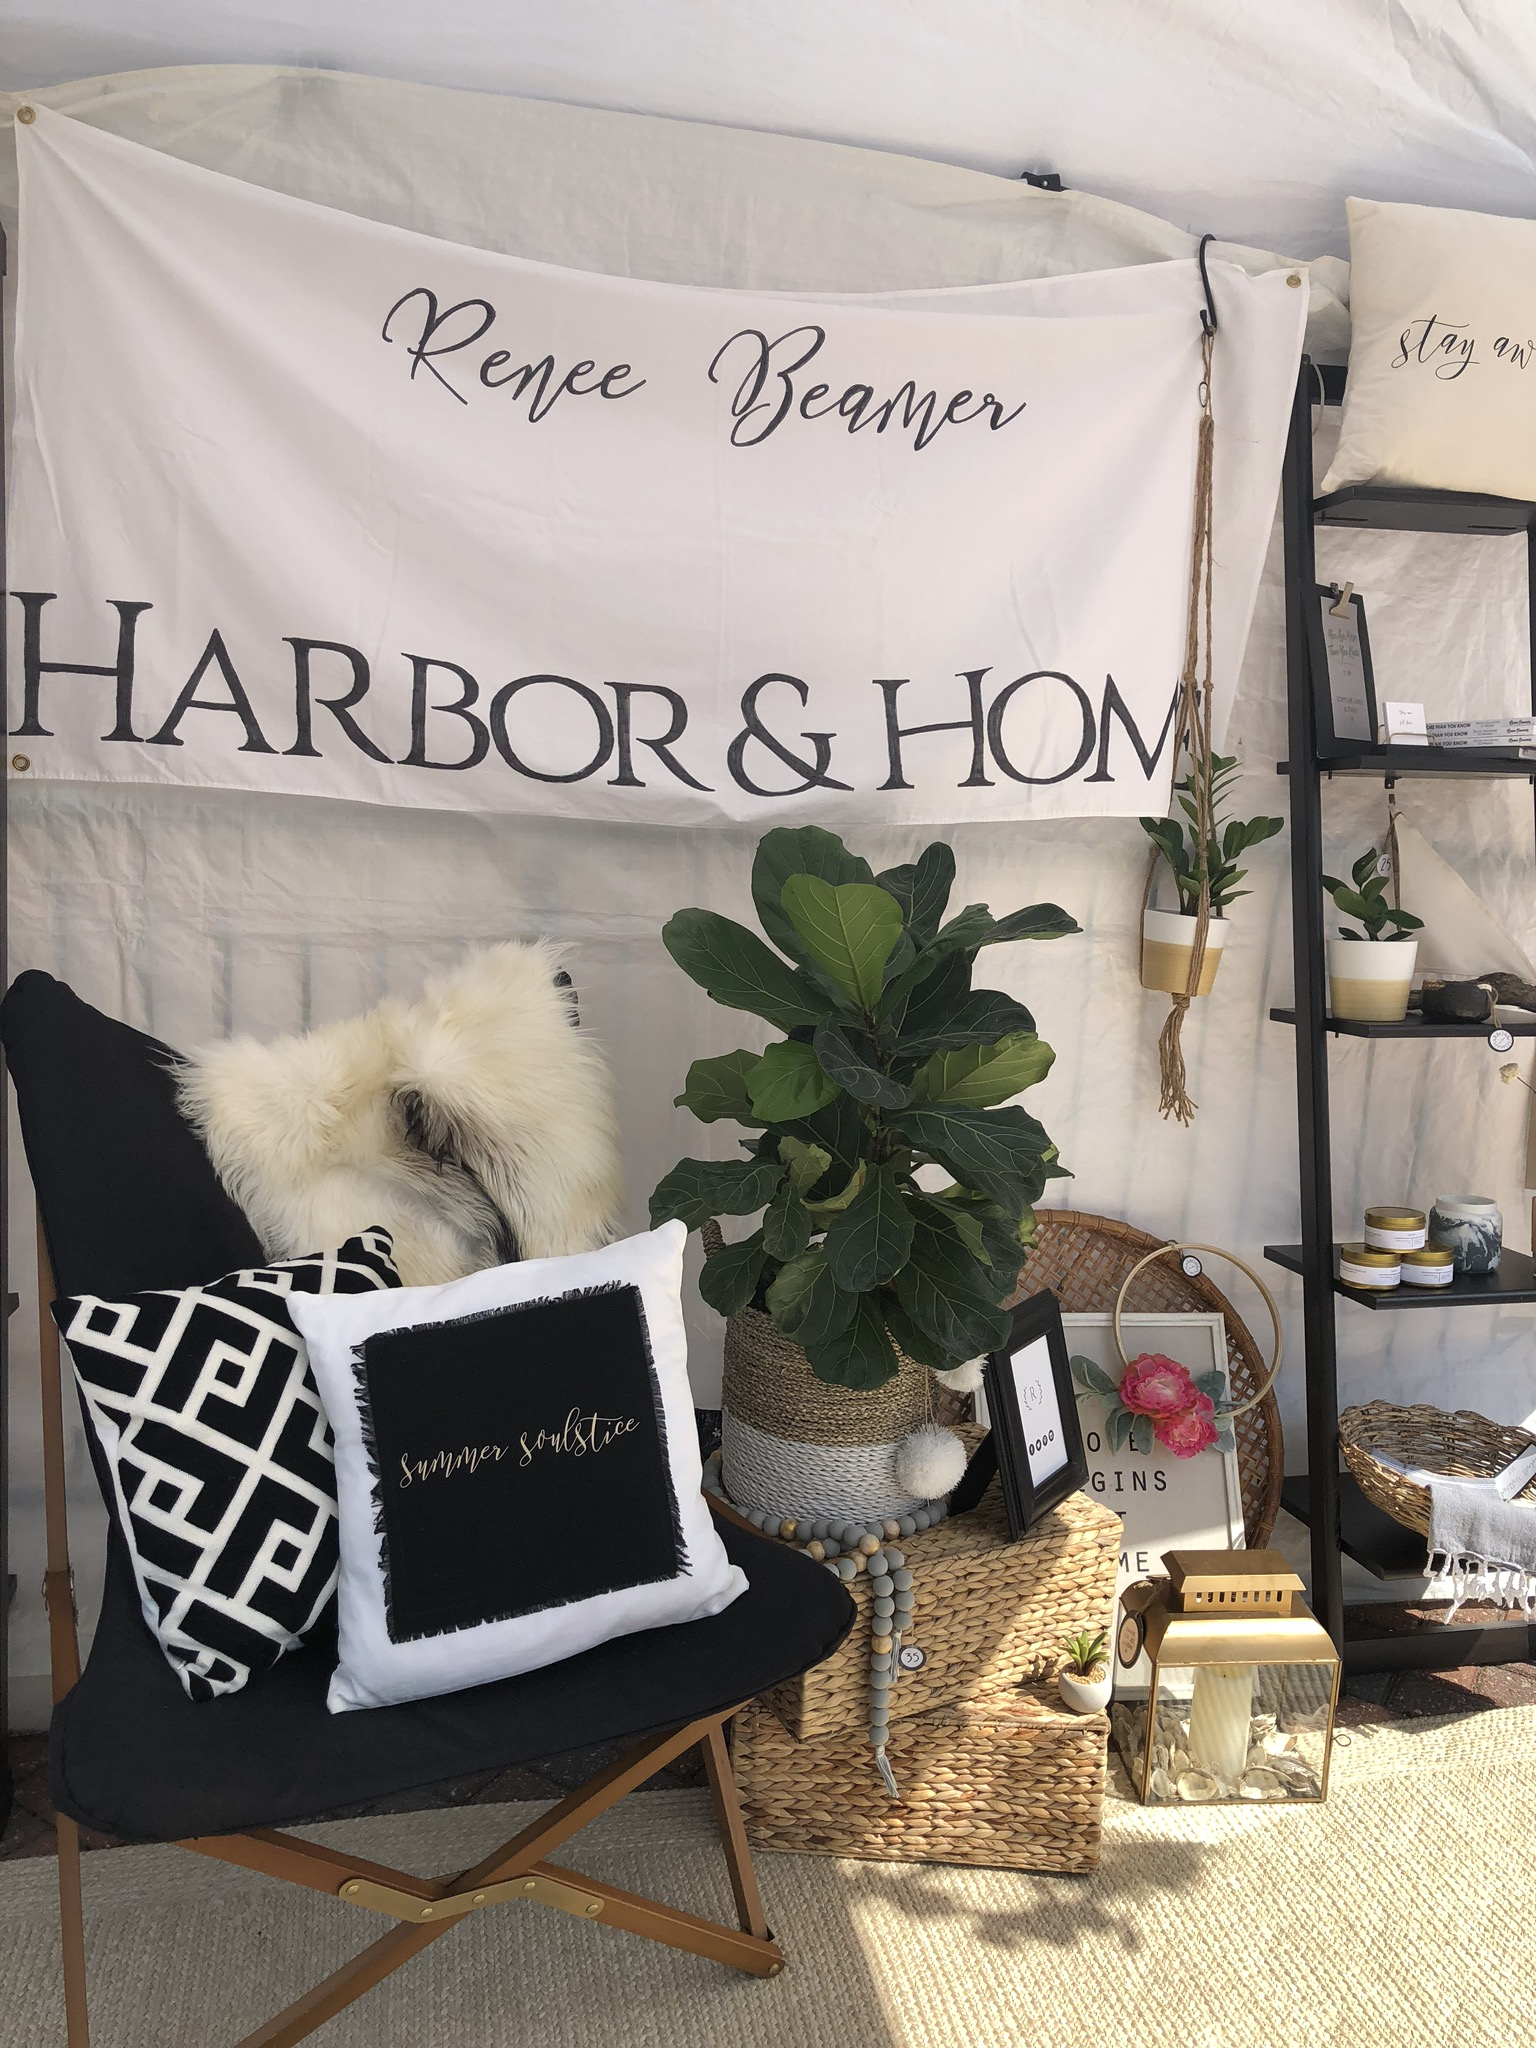 Renee Beamer Harbor & Home sign lets shoppers know what kind of items they can expect to find here.